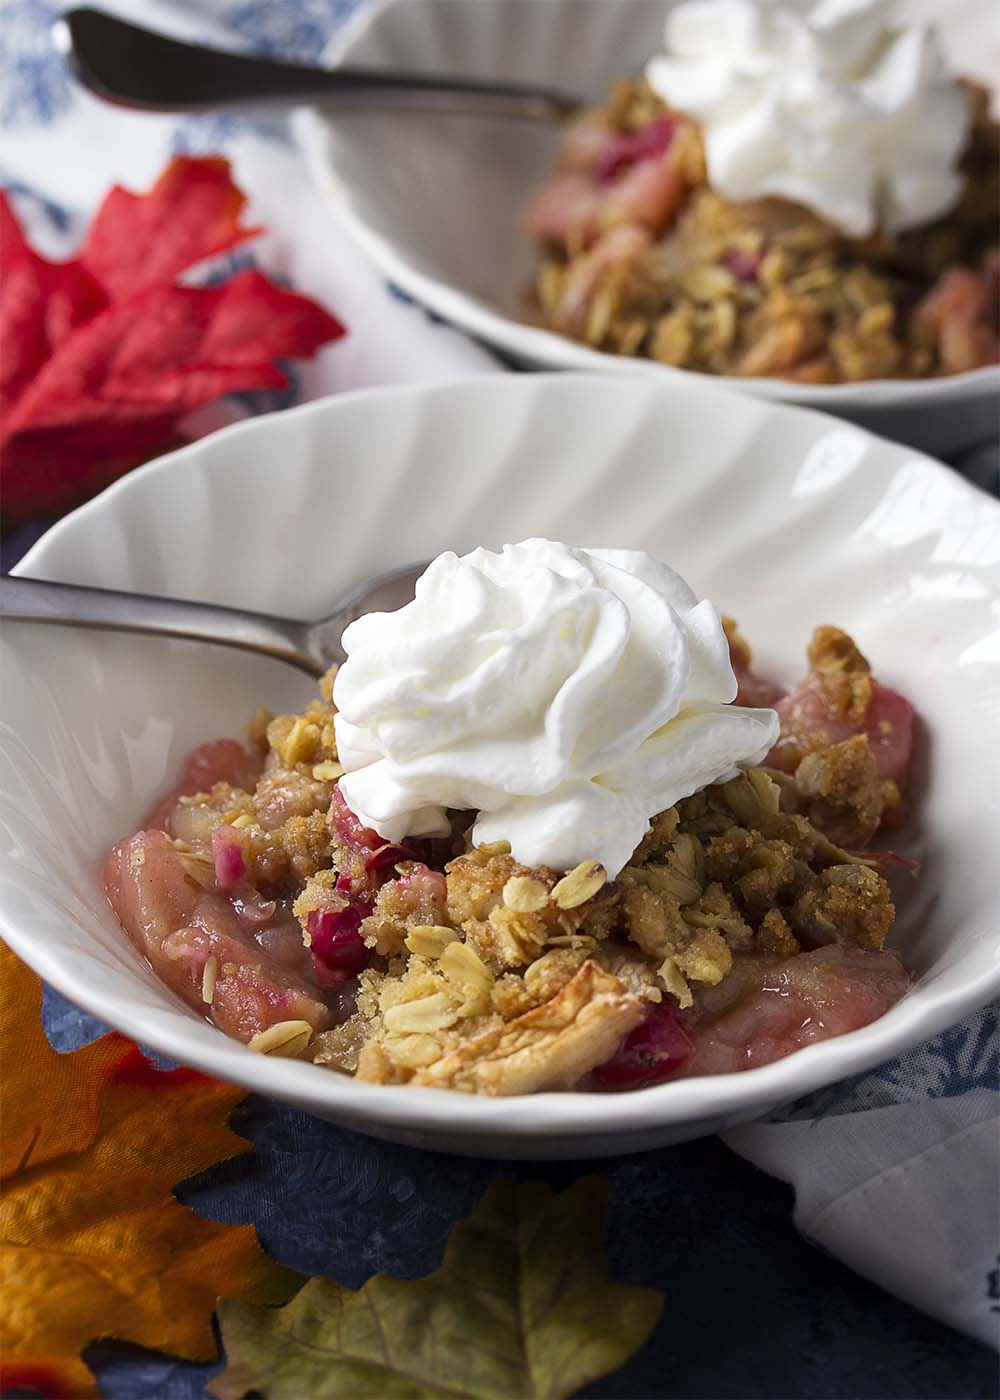 Bowls of warm apple cranberry crisp topped with whipped cream, spoons in the bowls.